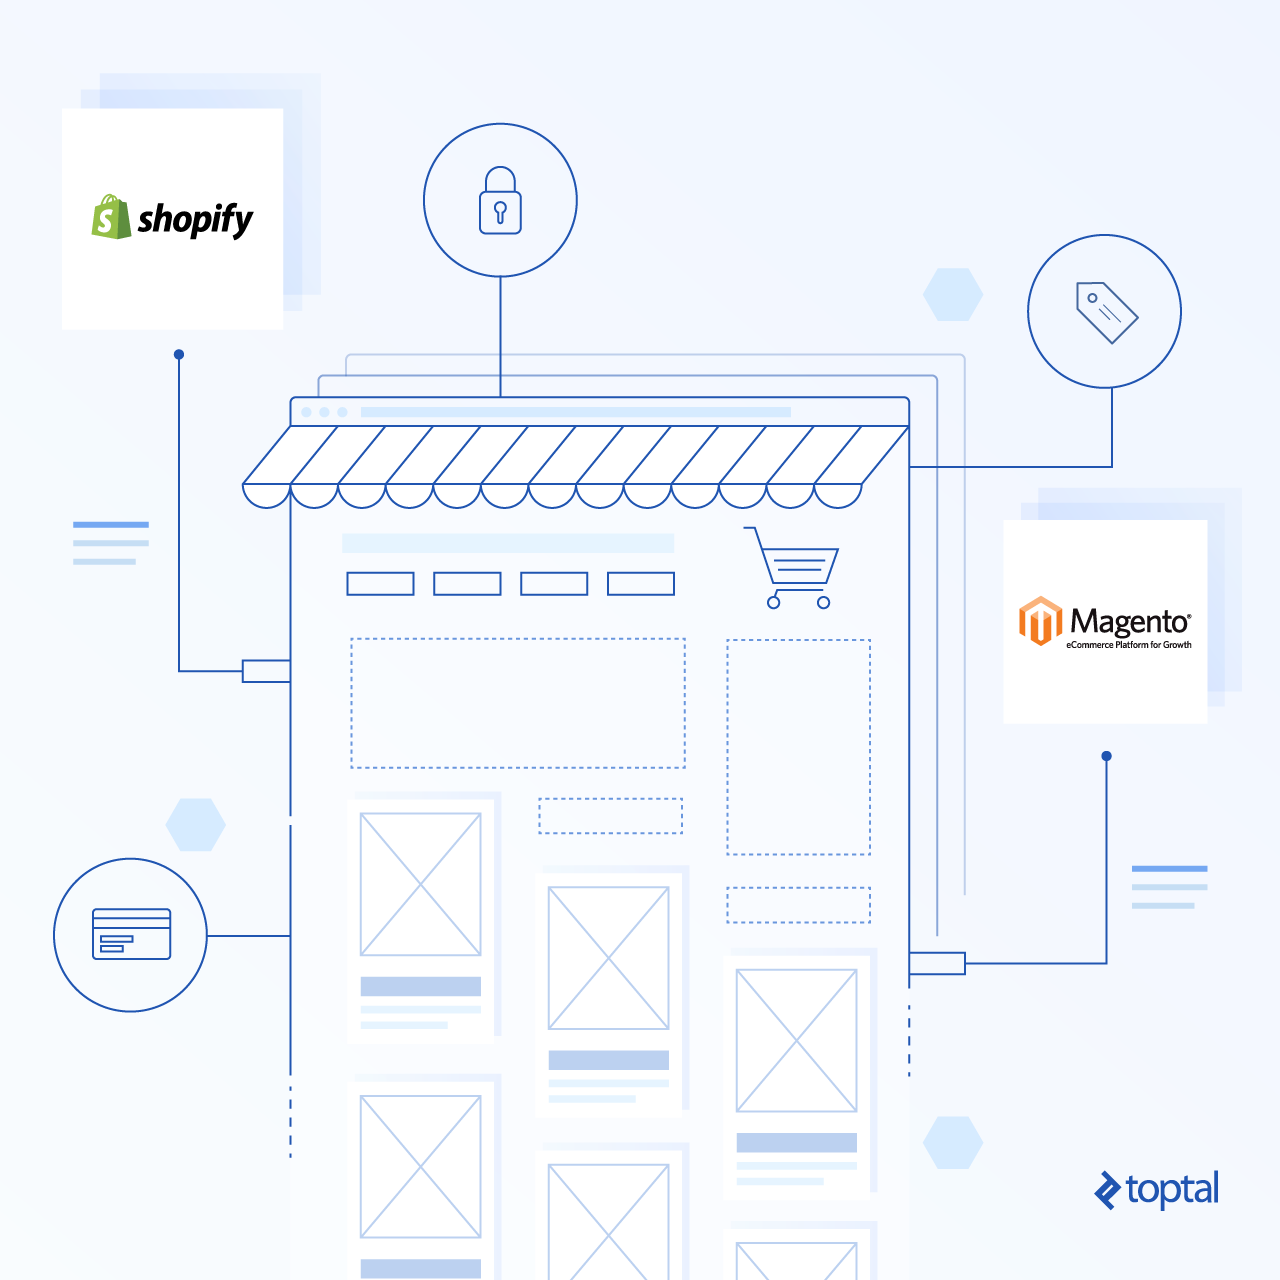 Shopify and Magento are the two most popular eCommerce platforms.